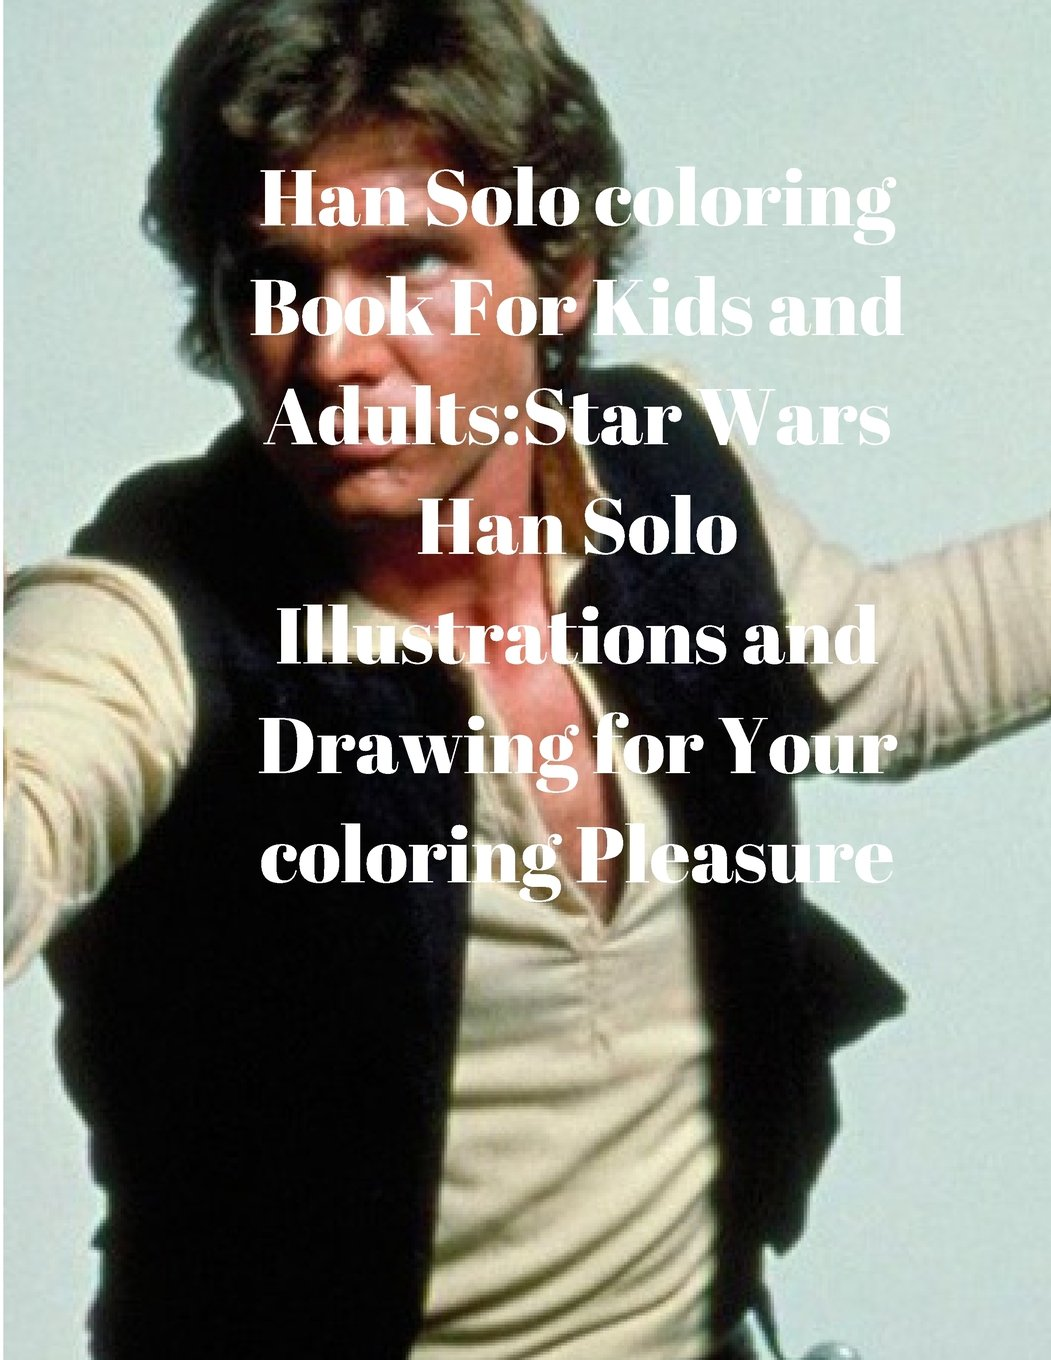 Han Solo coloring Book For Kids and Adults:Star Wars Han Solo Illustrations and Drawing for Your coloring Pleasure